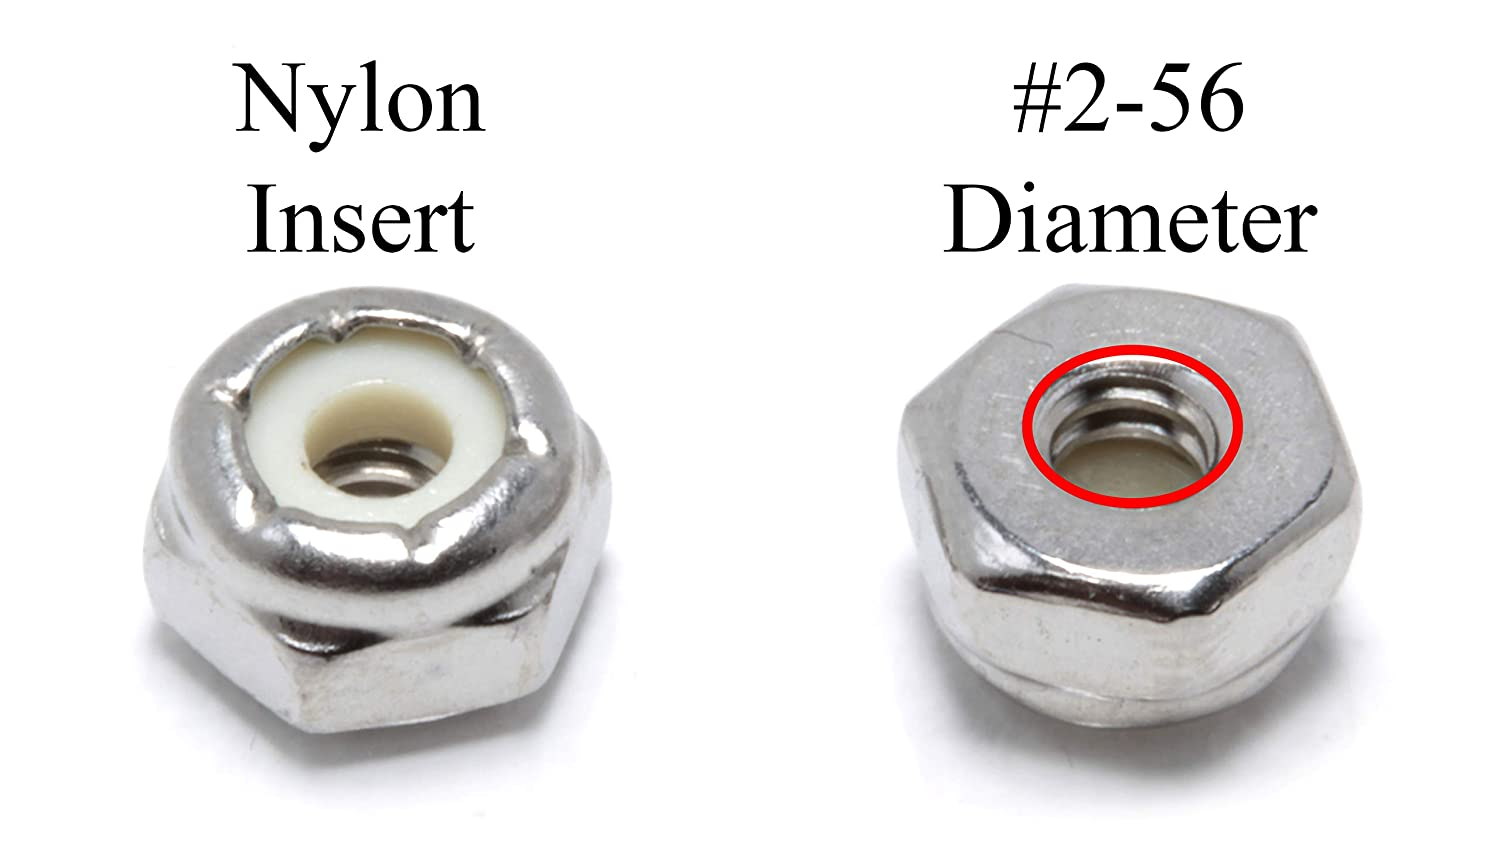 Stainless Steel Finish Hex 304 18-8 Stainless Steel with Nylon Insert 5//16-18 Inch Lock Nut by Bolt Dropper 100 Pack